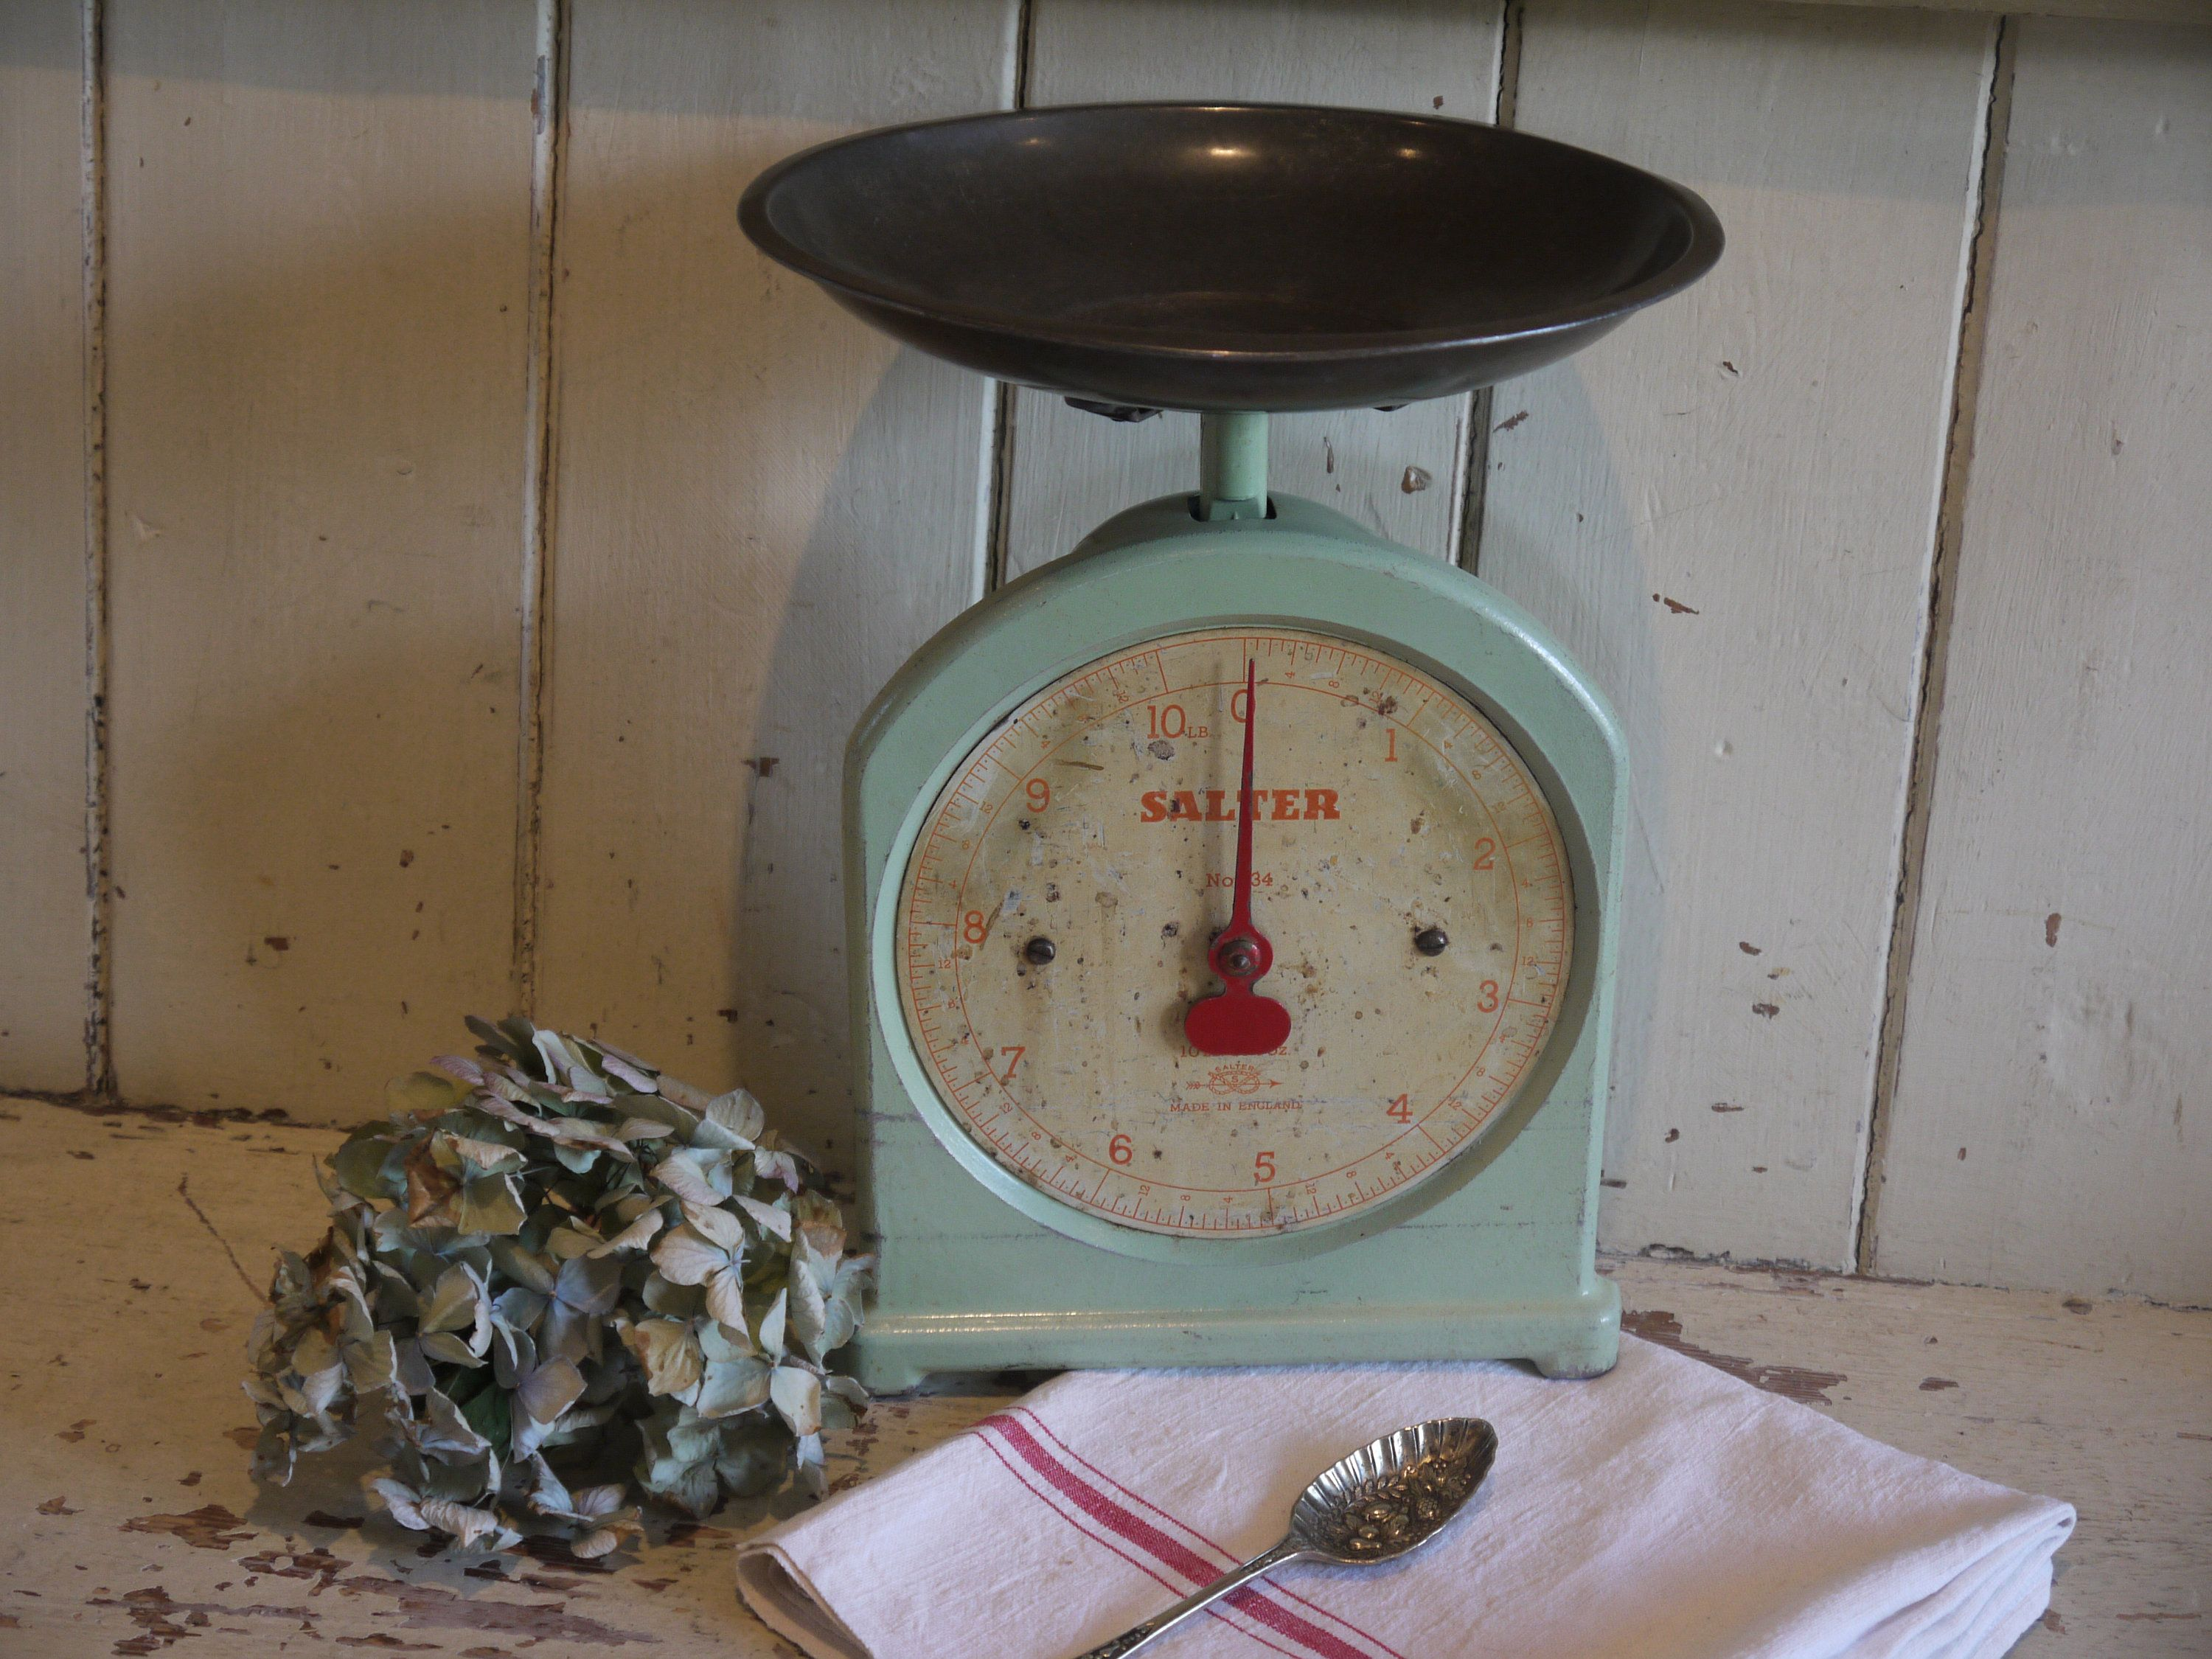 Rustic Weighing Scales Salter Pastel Green Kitchen Scale